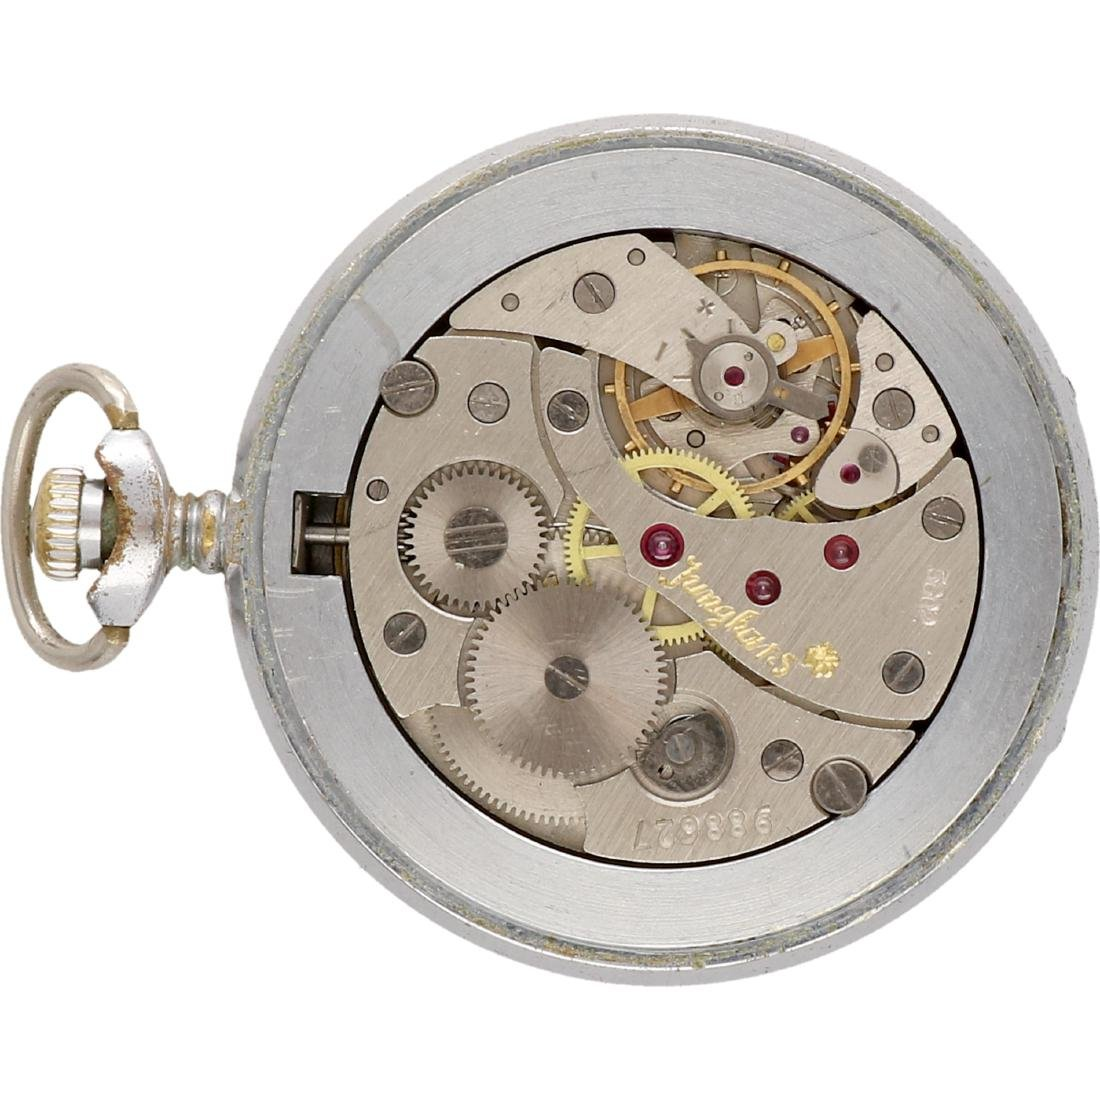 Junghans - Men's pocket watch - Manual winding. - 4